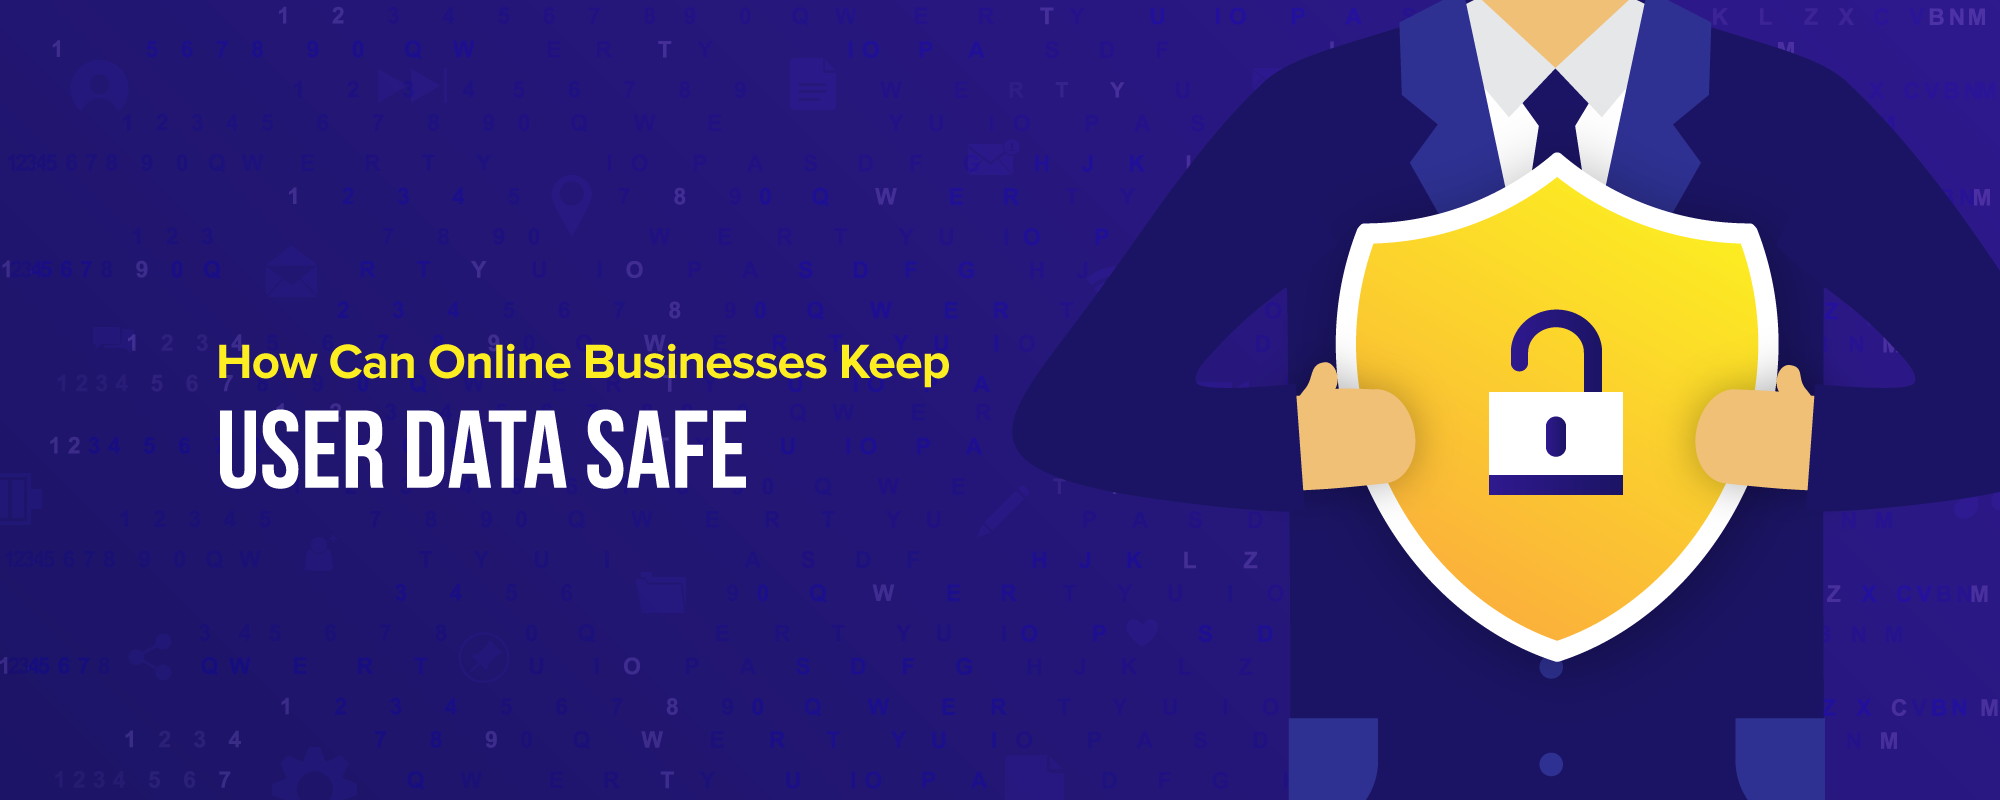 Security Measures Online Businesses Should Take to Keep User Data Safe